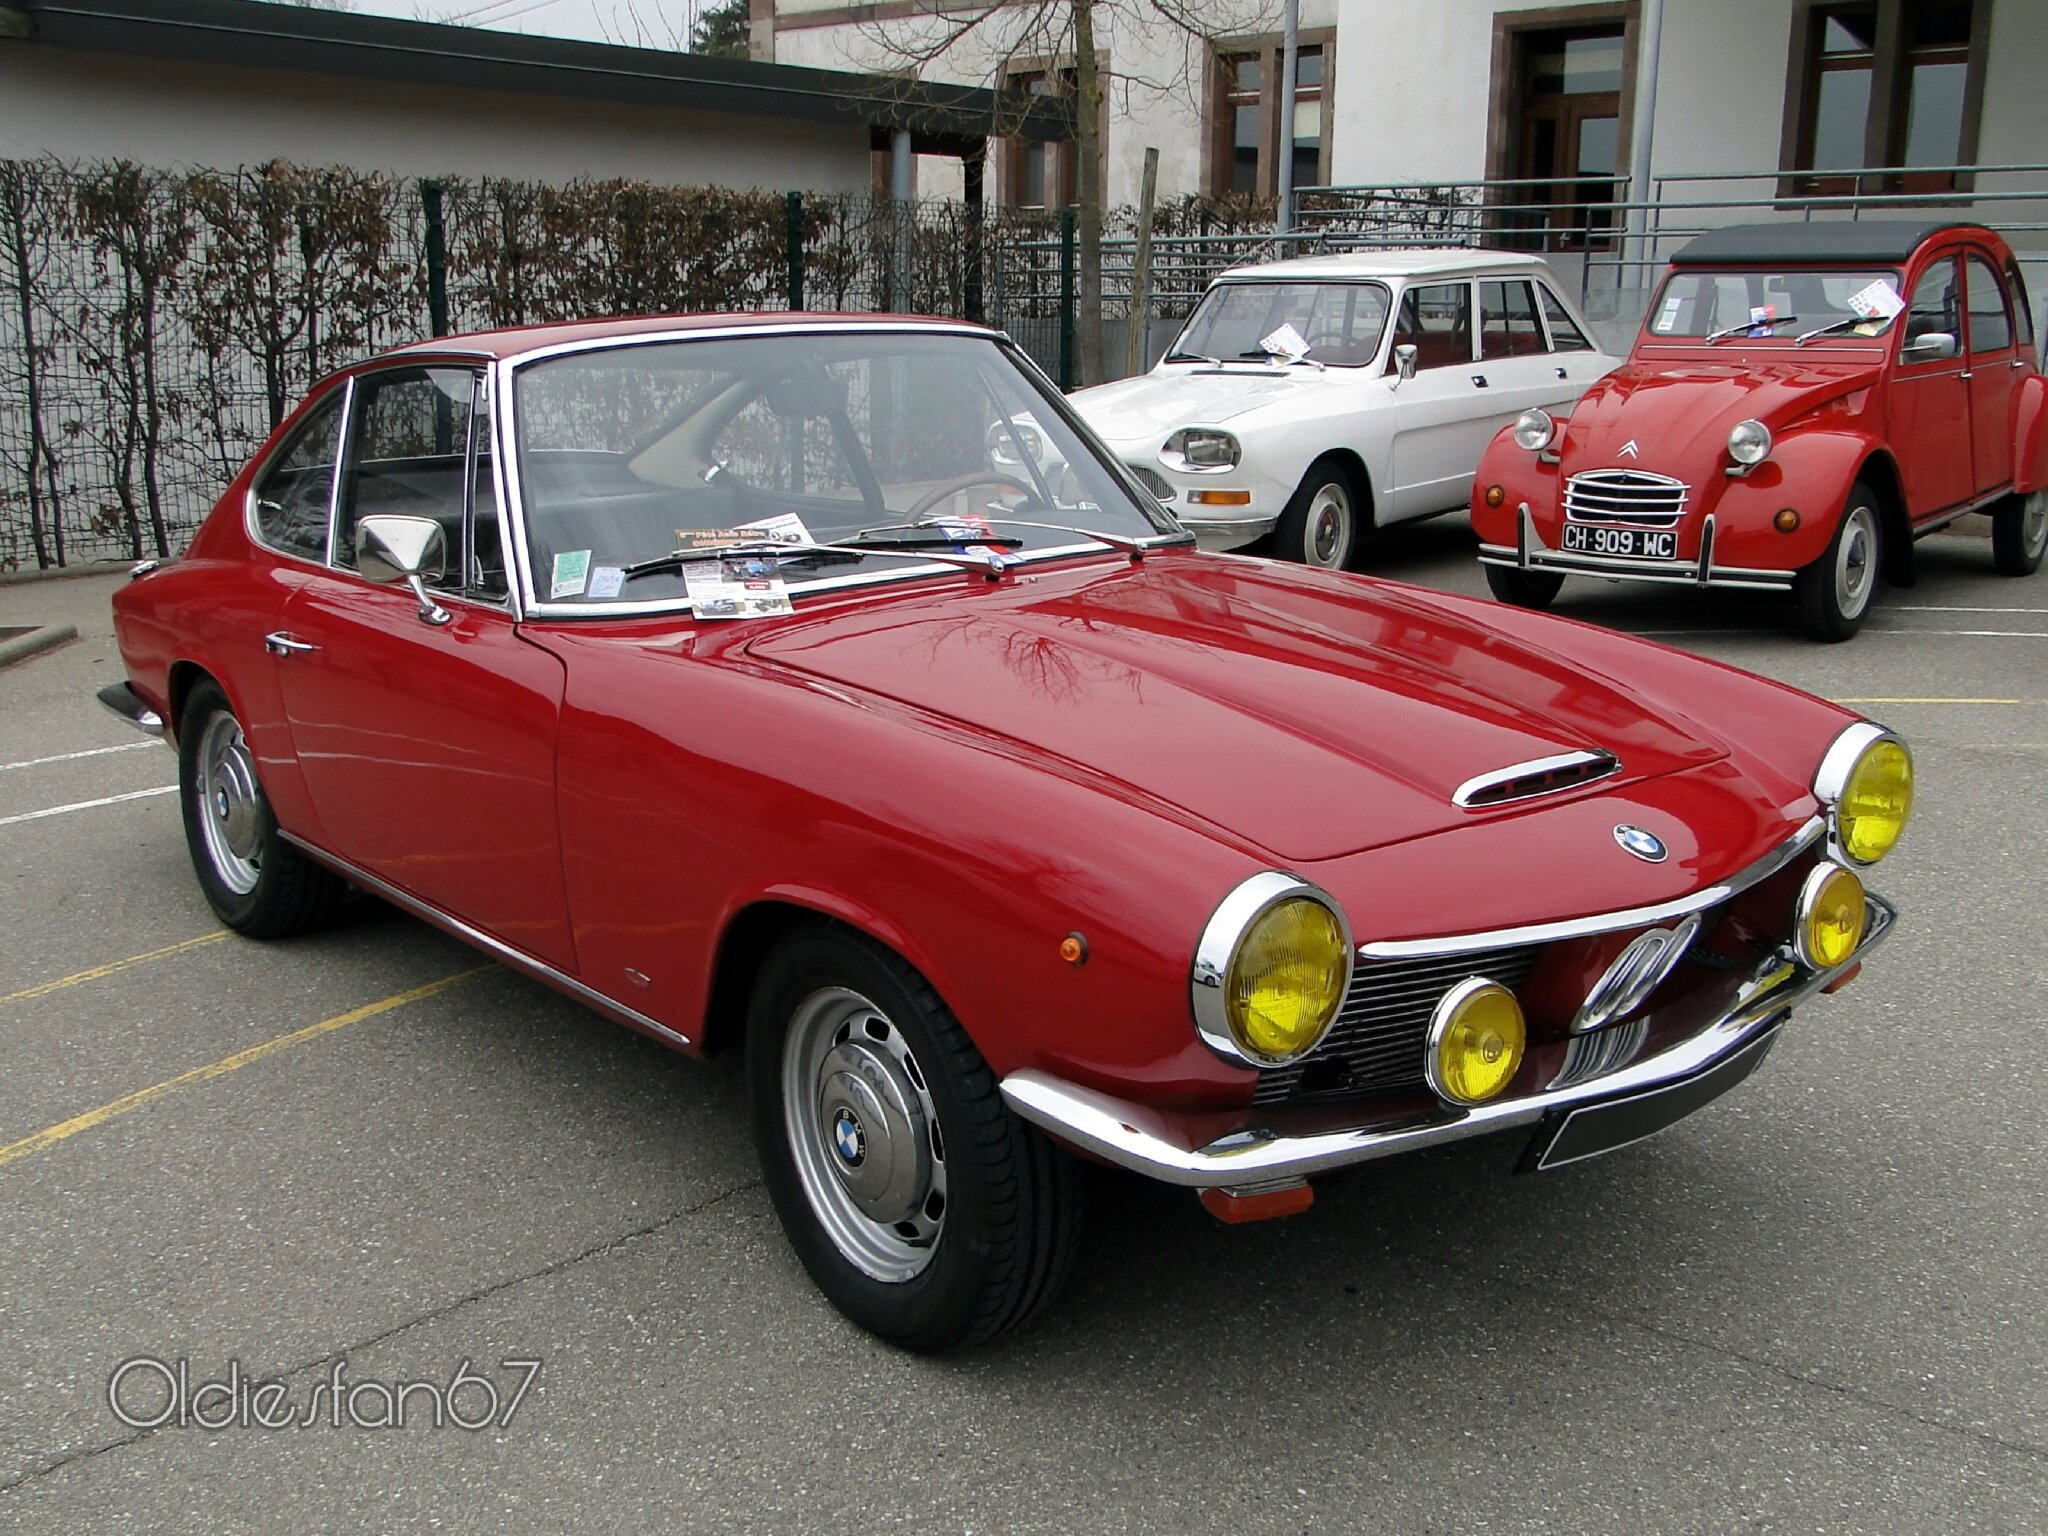 bmw 1600 gt coupe 1967 oldiesfan67 mon blog auto. Black Bedroom Furniture Sets. Home Design Ideas